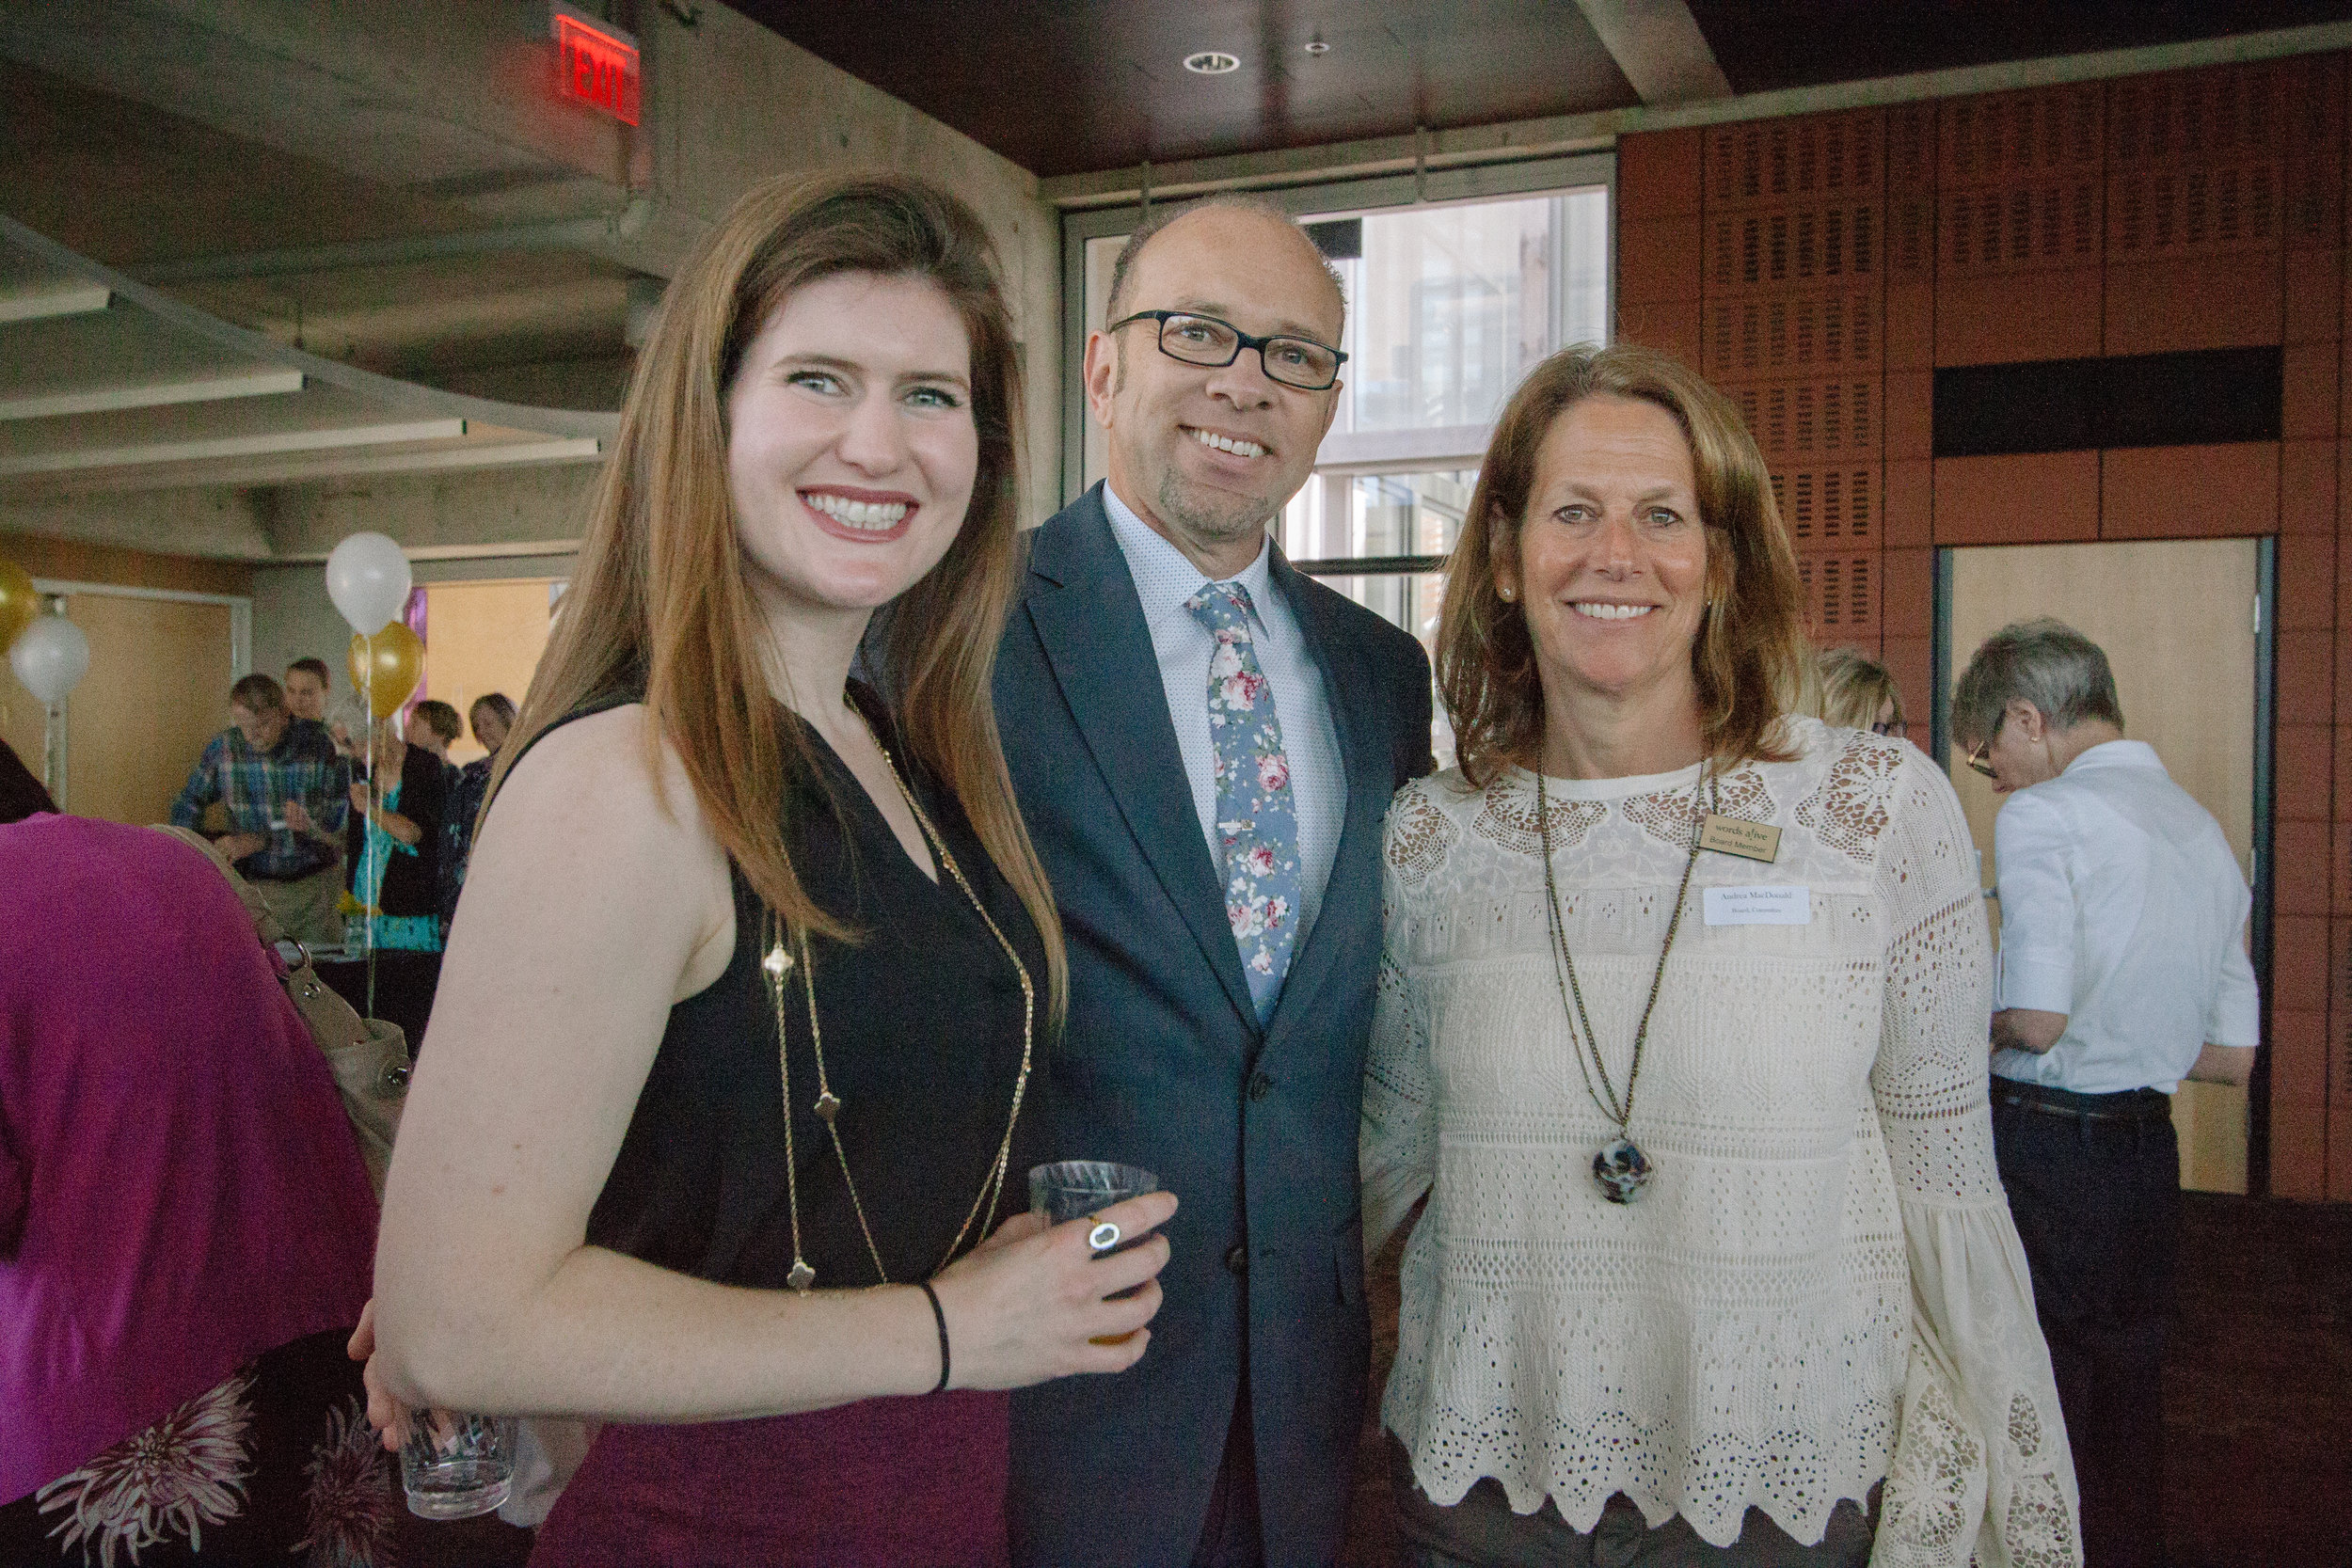 An image of Andrea with Christina Meeker, Words Alive Volunteer Program Manager, and Patrick Stewart, Words Alive Executive Director, at the 2018 Volunteer Appreciation Event.